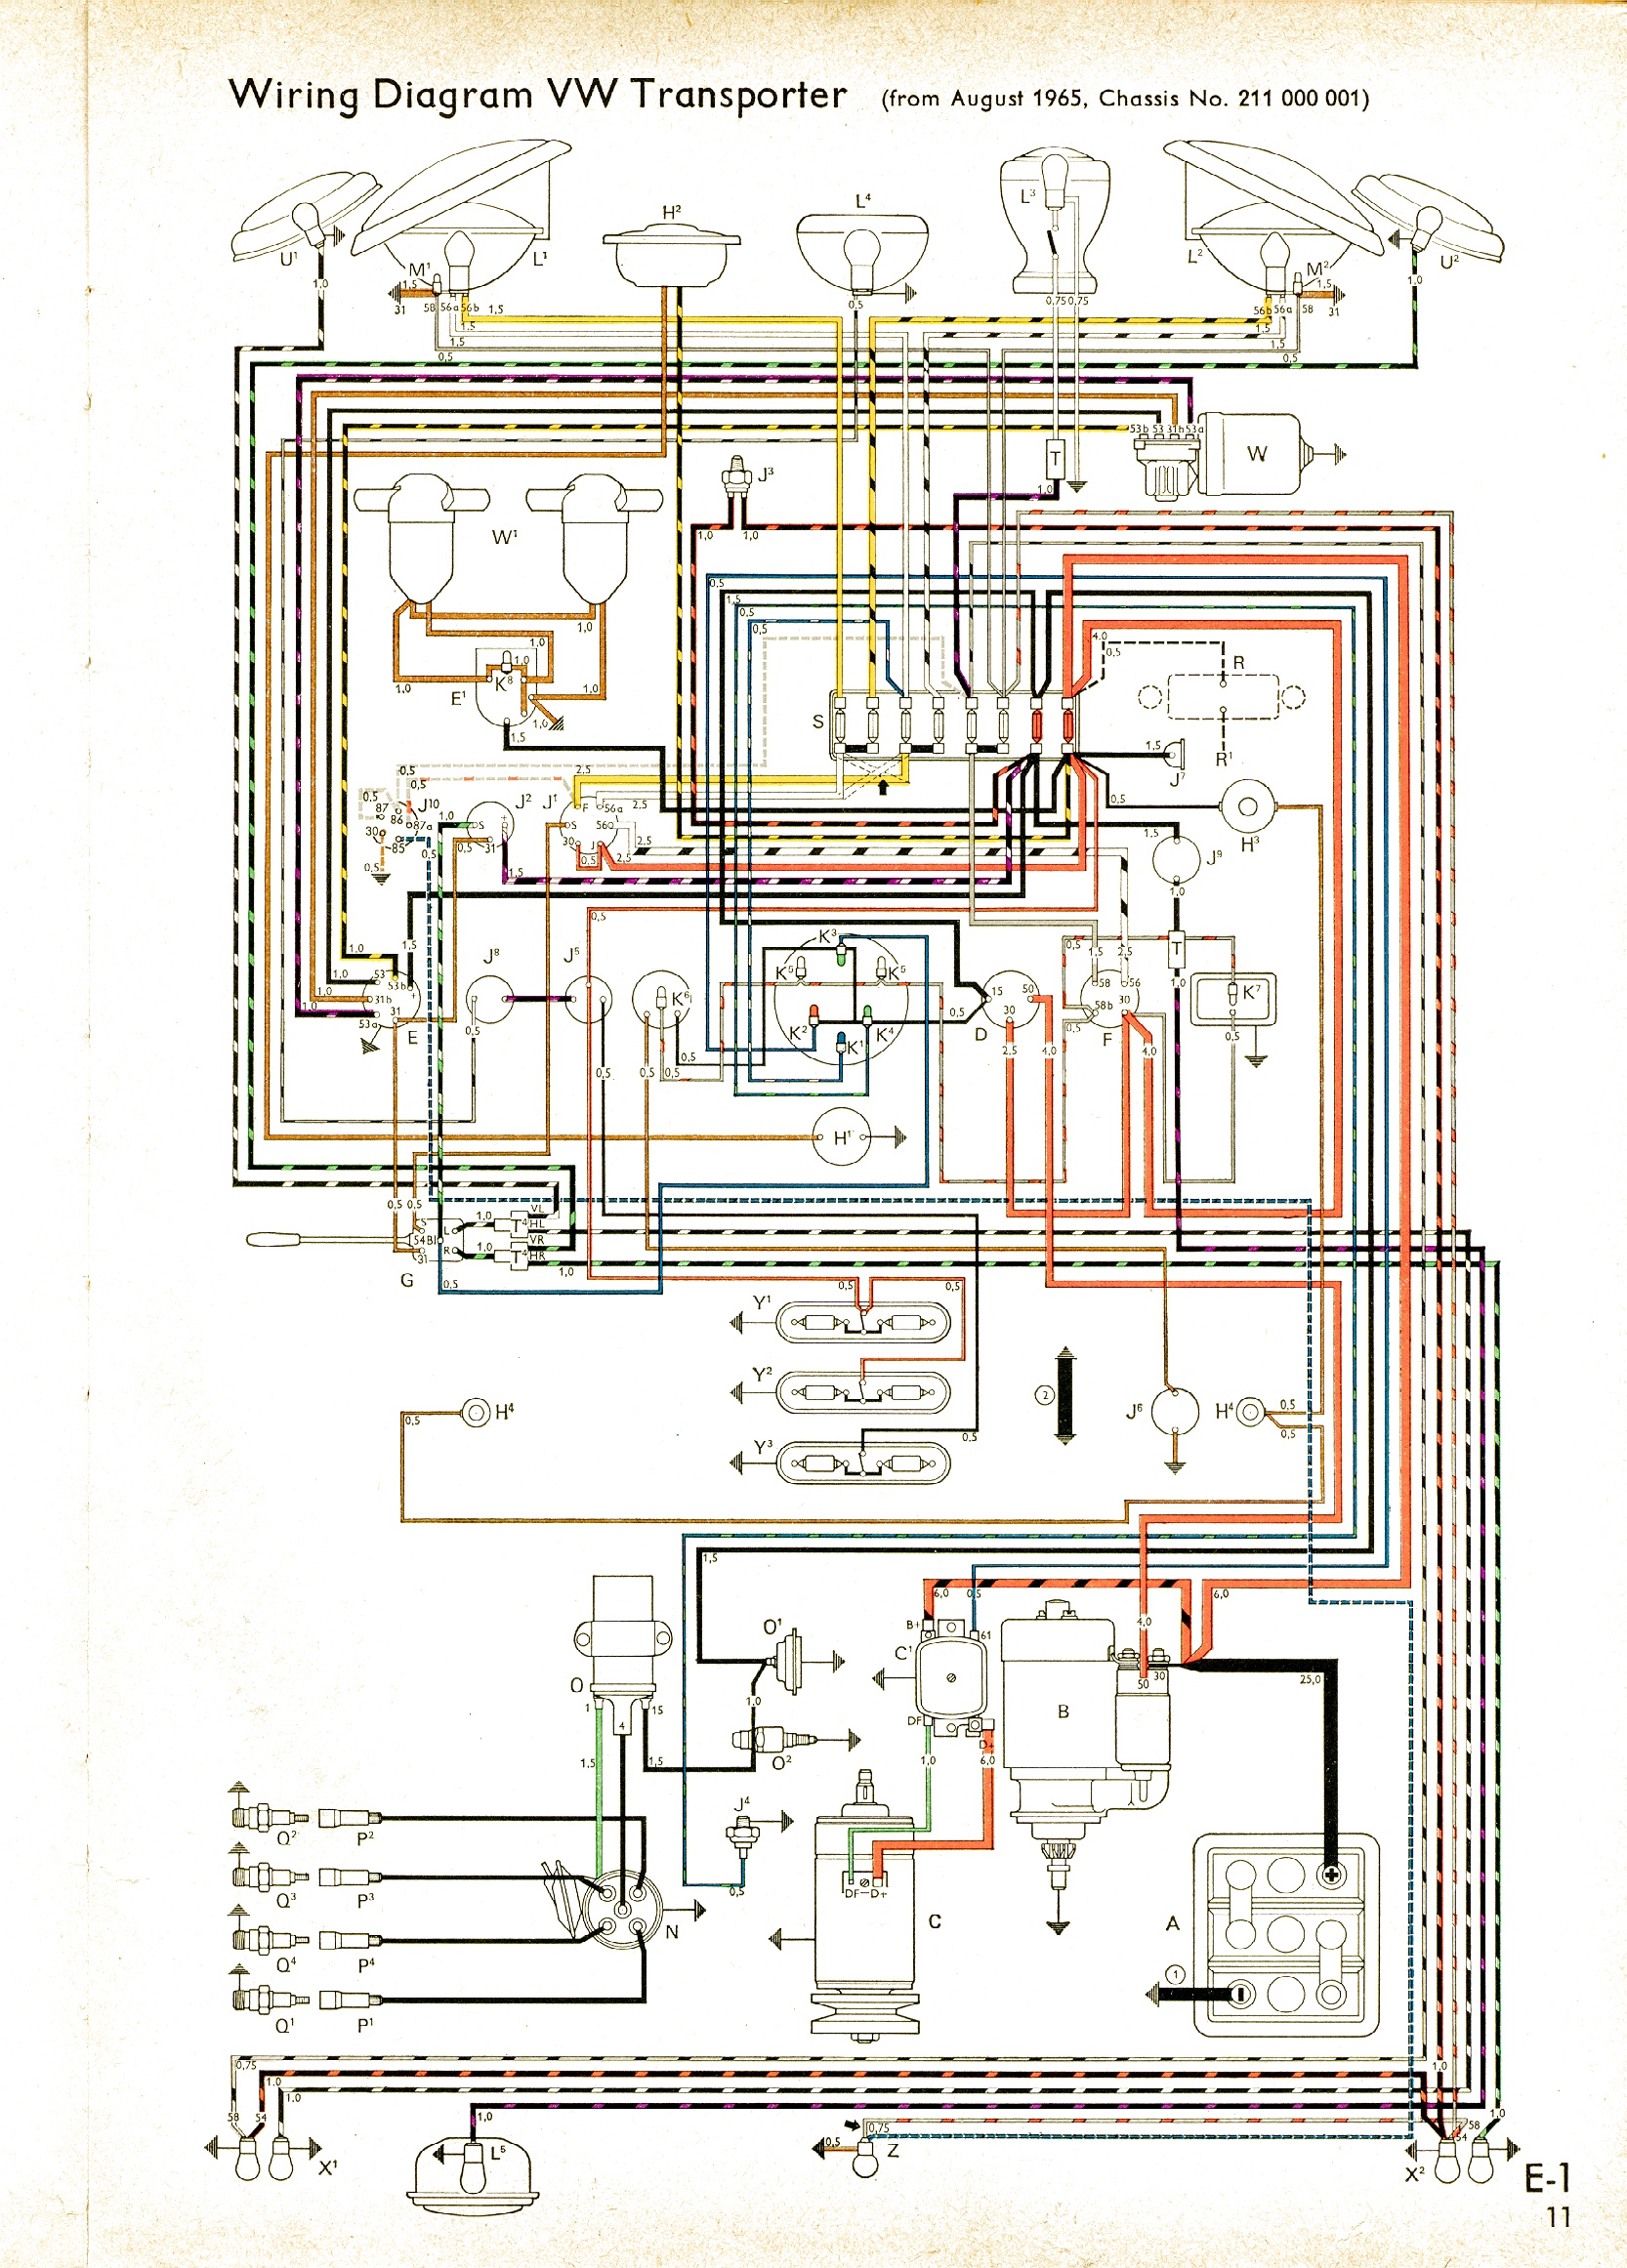 73 vw bus wiring diagrams 20 13 artatec automobile de \u2022vintagebus com vw bus and other wiring diagrams rh vintagebus com 77 vw van wiring diagram 1968 vw bus wiring diagram